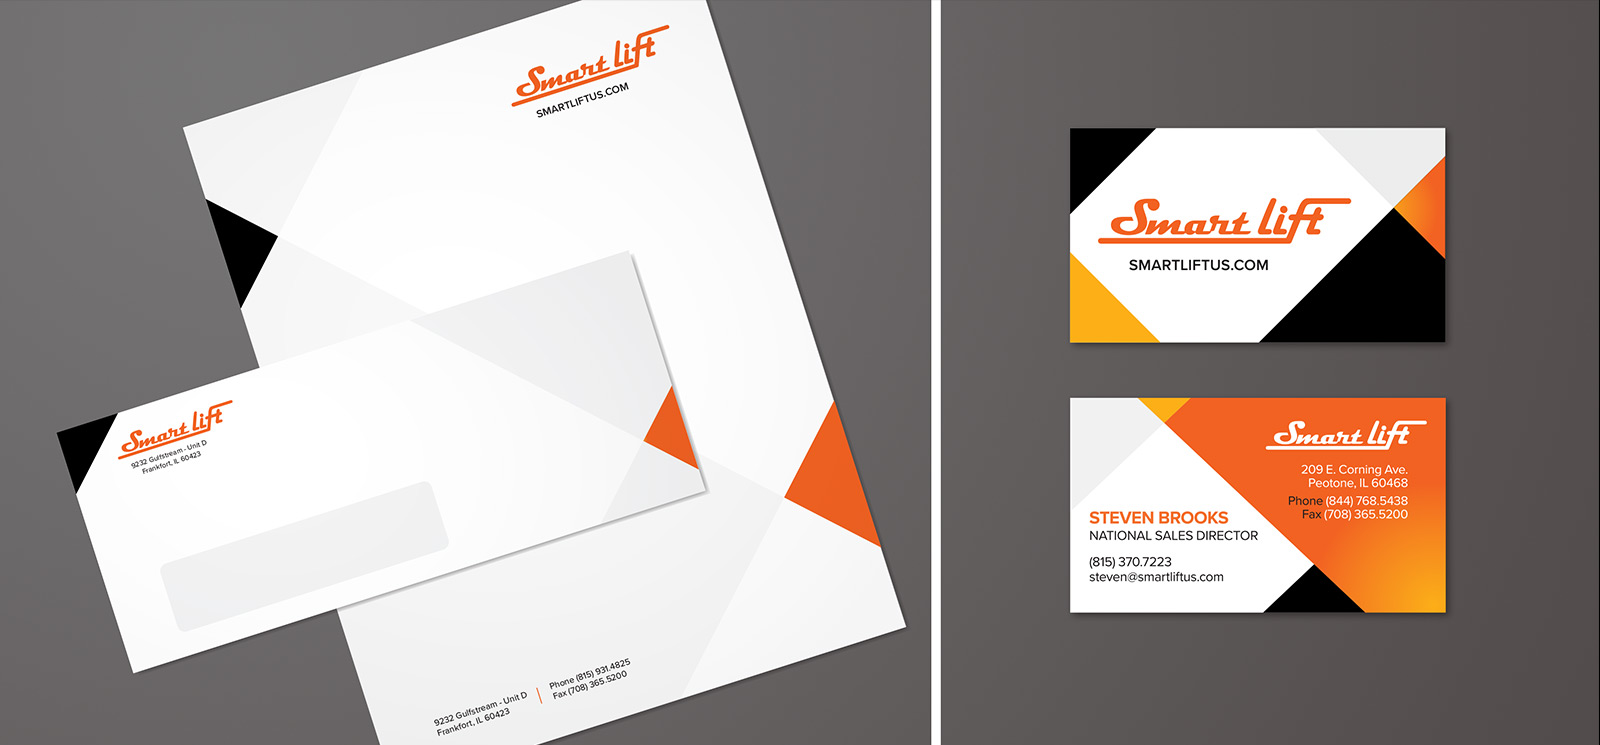 SmartLift® stationery and business card design